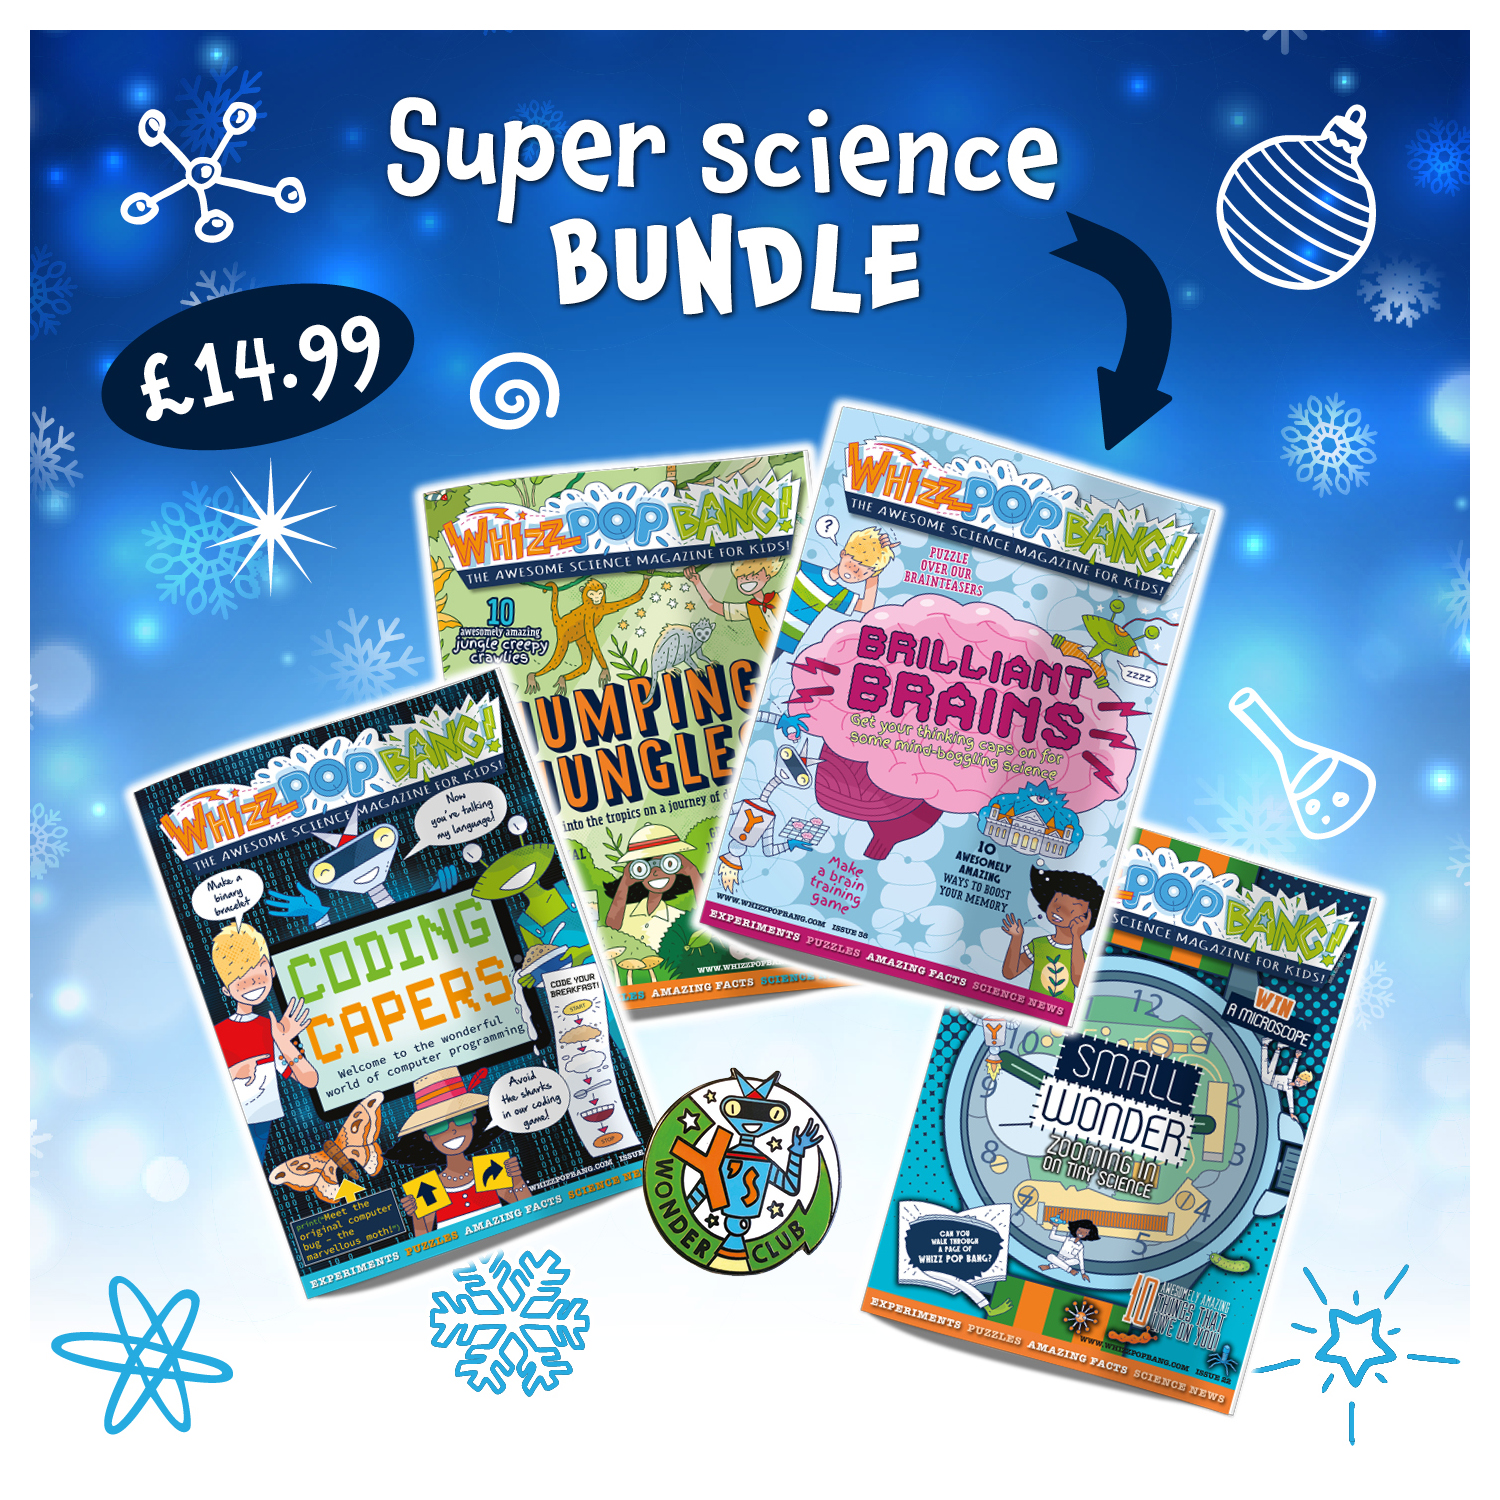 Super Science Bundle